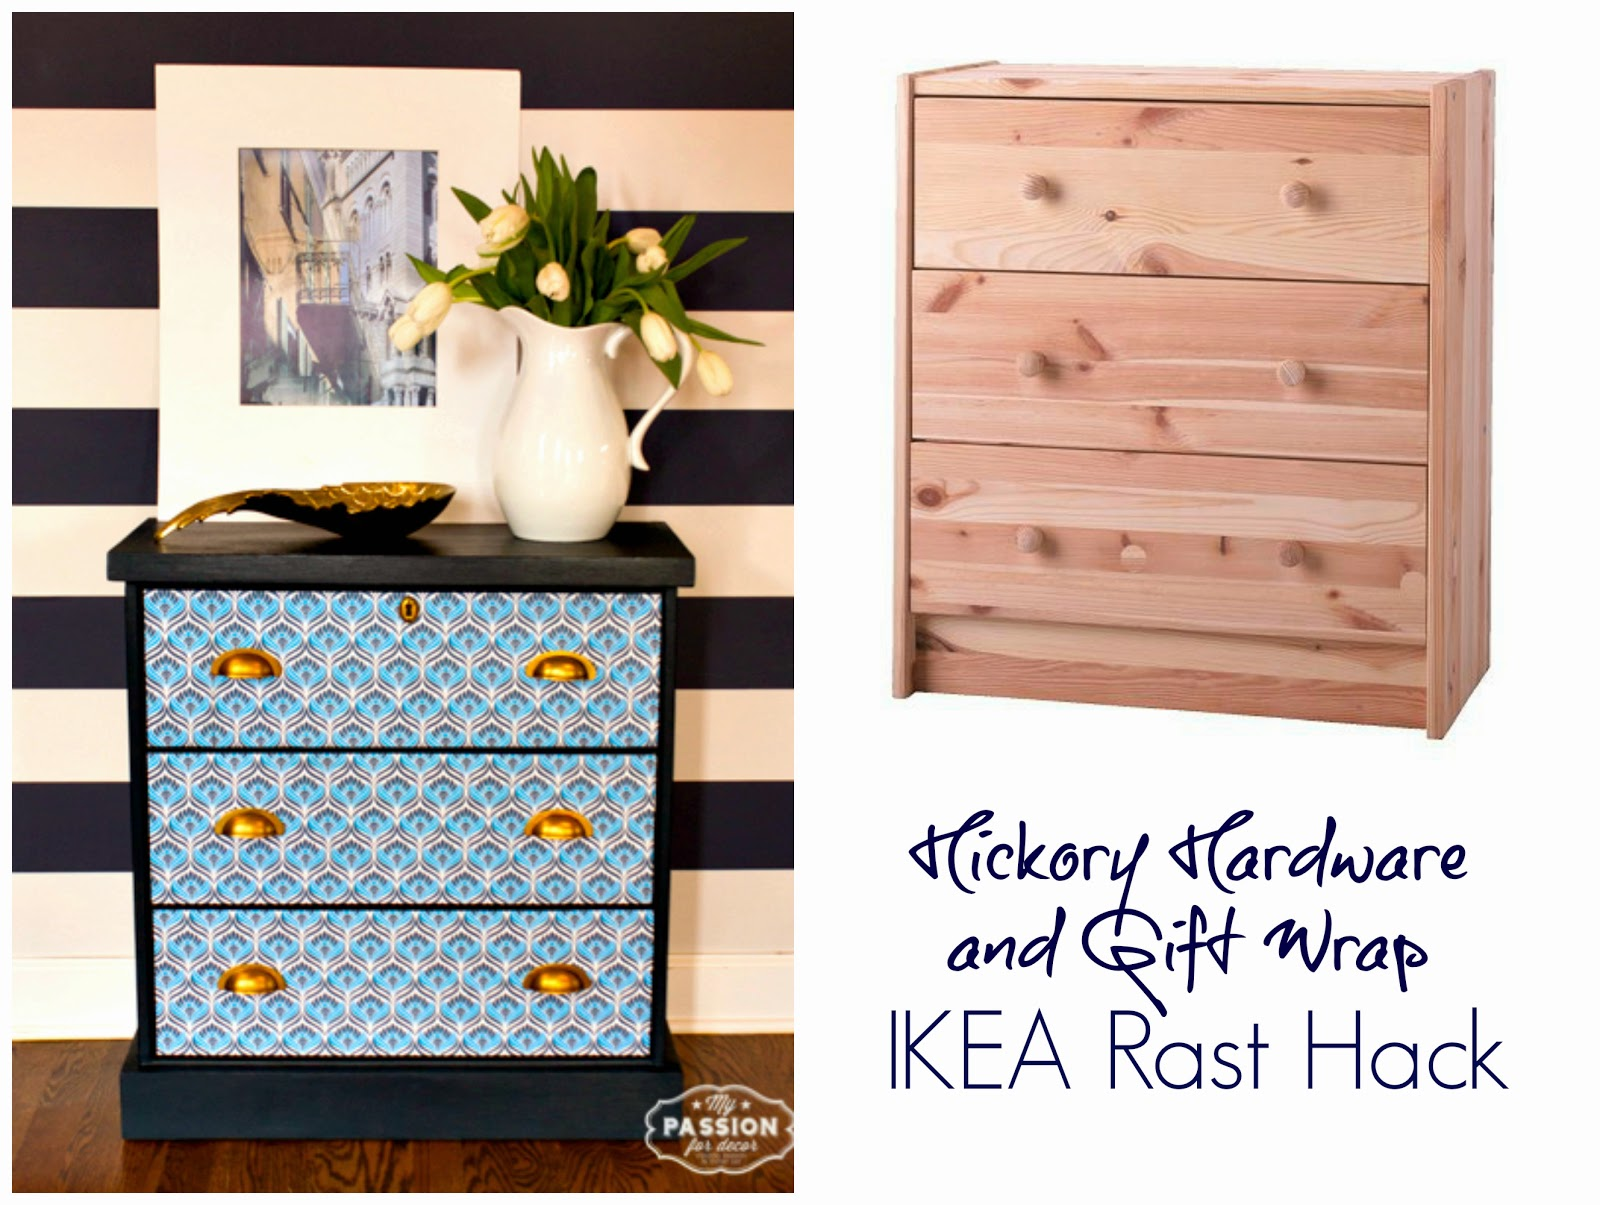 Ikea Rast My Passion For Decor Gift Wrap Hardware Ikea Rast Hack